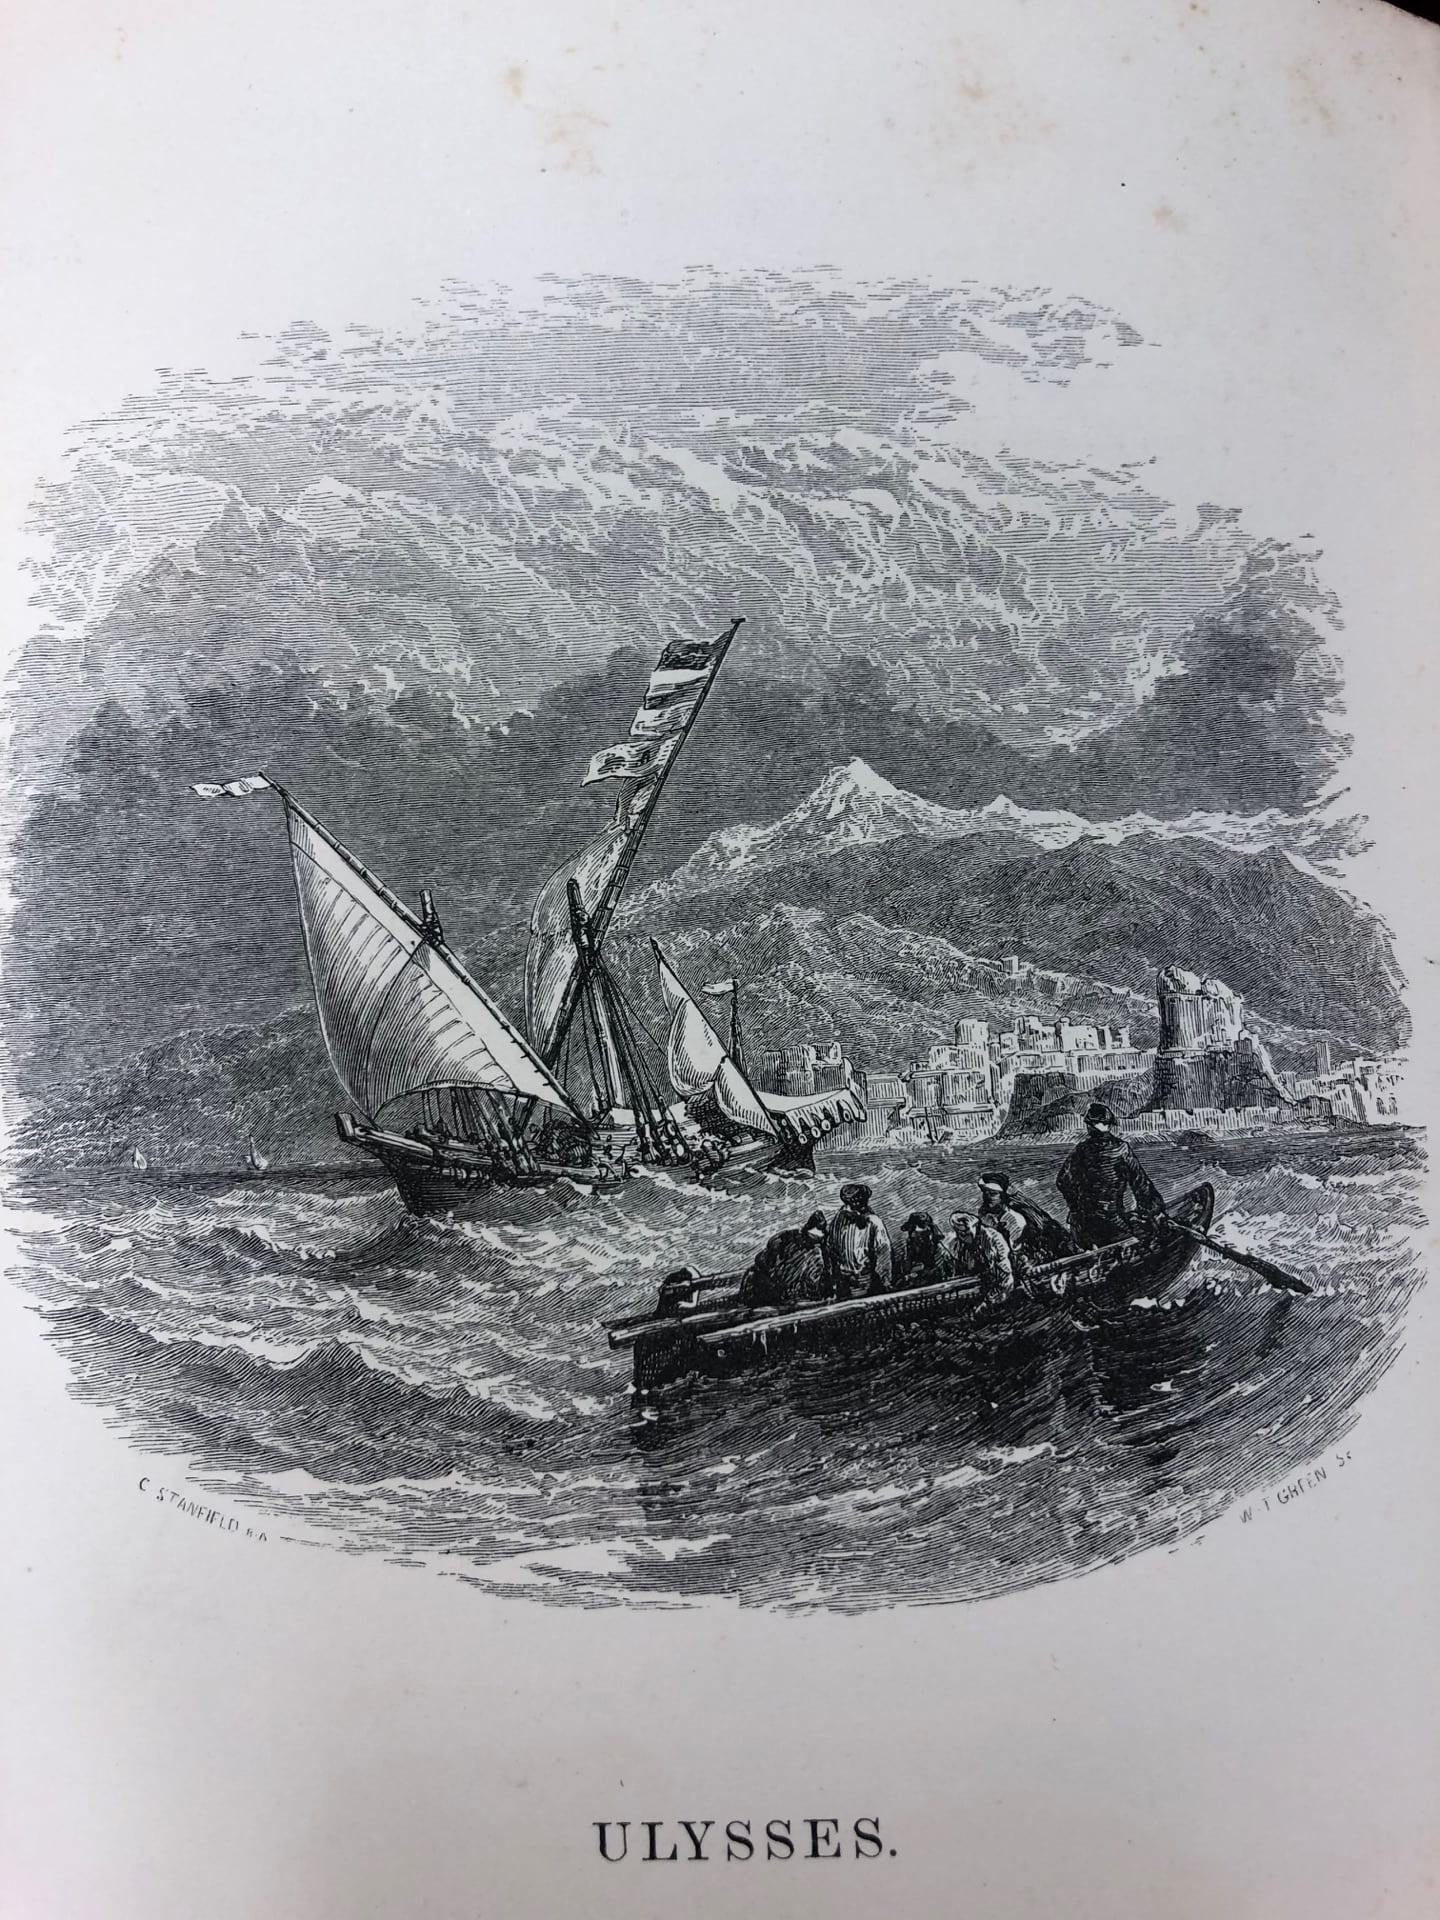 Black and white drawing with a ship in the background with sails and a rowboat in the foreground with people in it.